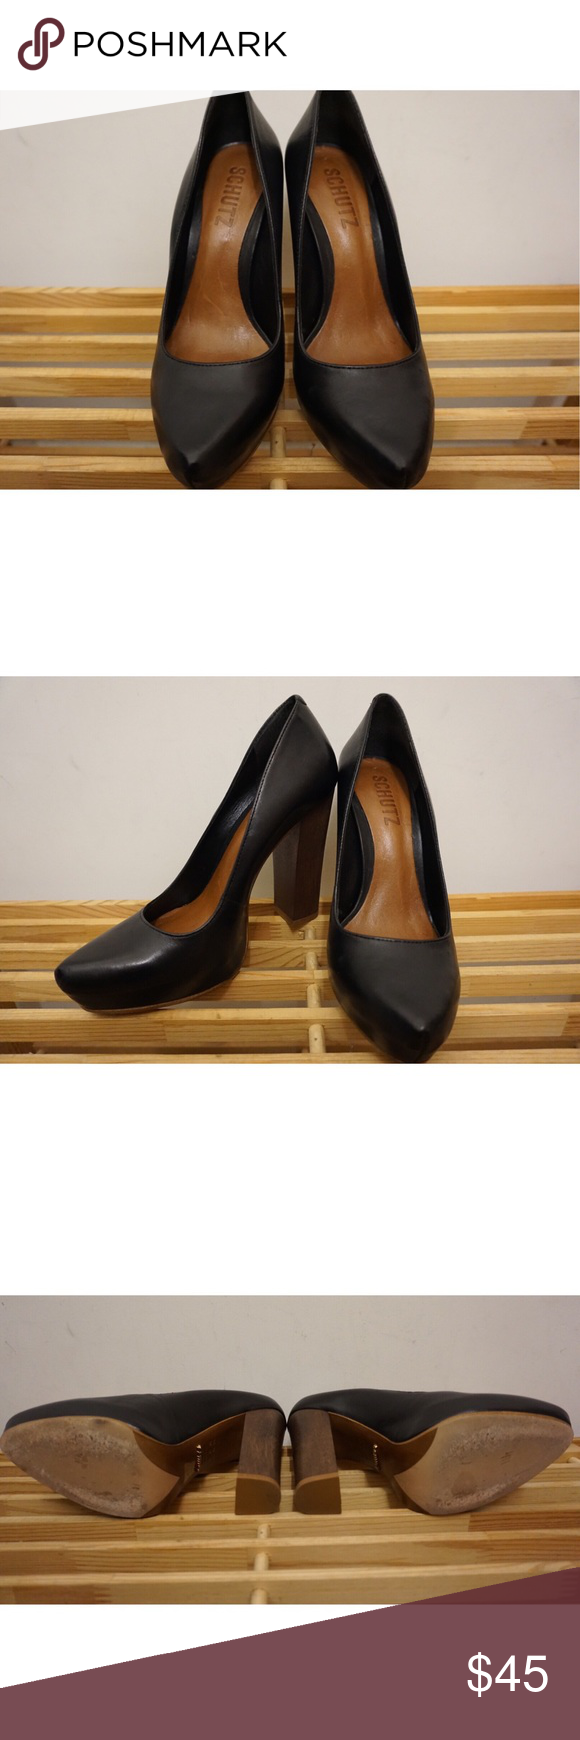 SCHUTZ Platform Heels - Black SCHUTZ heels in black - color goes with anything and can dress up or dress down any outfit. Block heel and platform. Lightly worn. These are a US Size 8, but are too snug on me - fit is closer to a US Size 7.5. SCHUTZ Shoes Heels